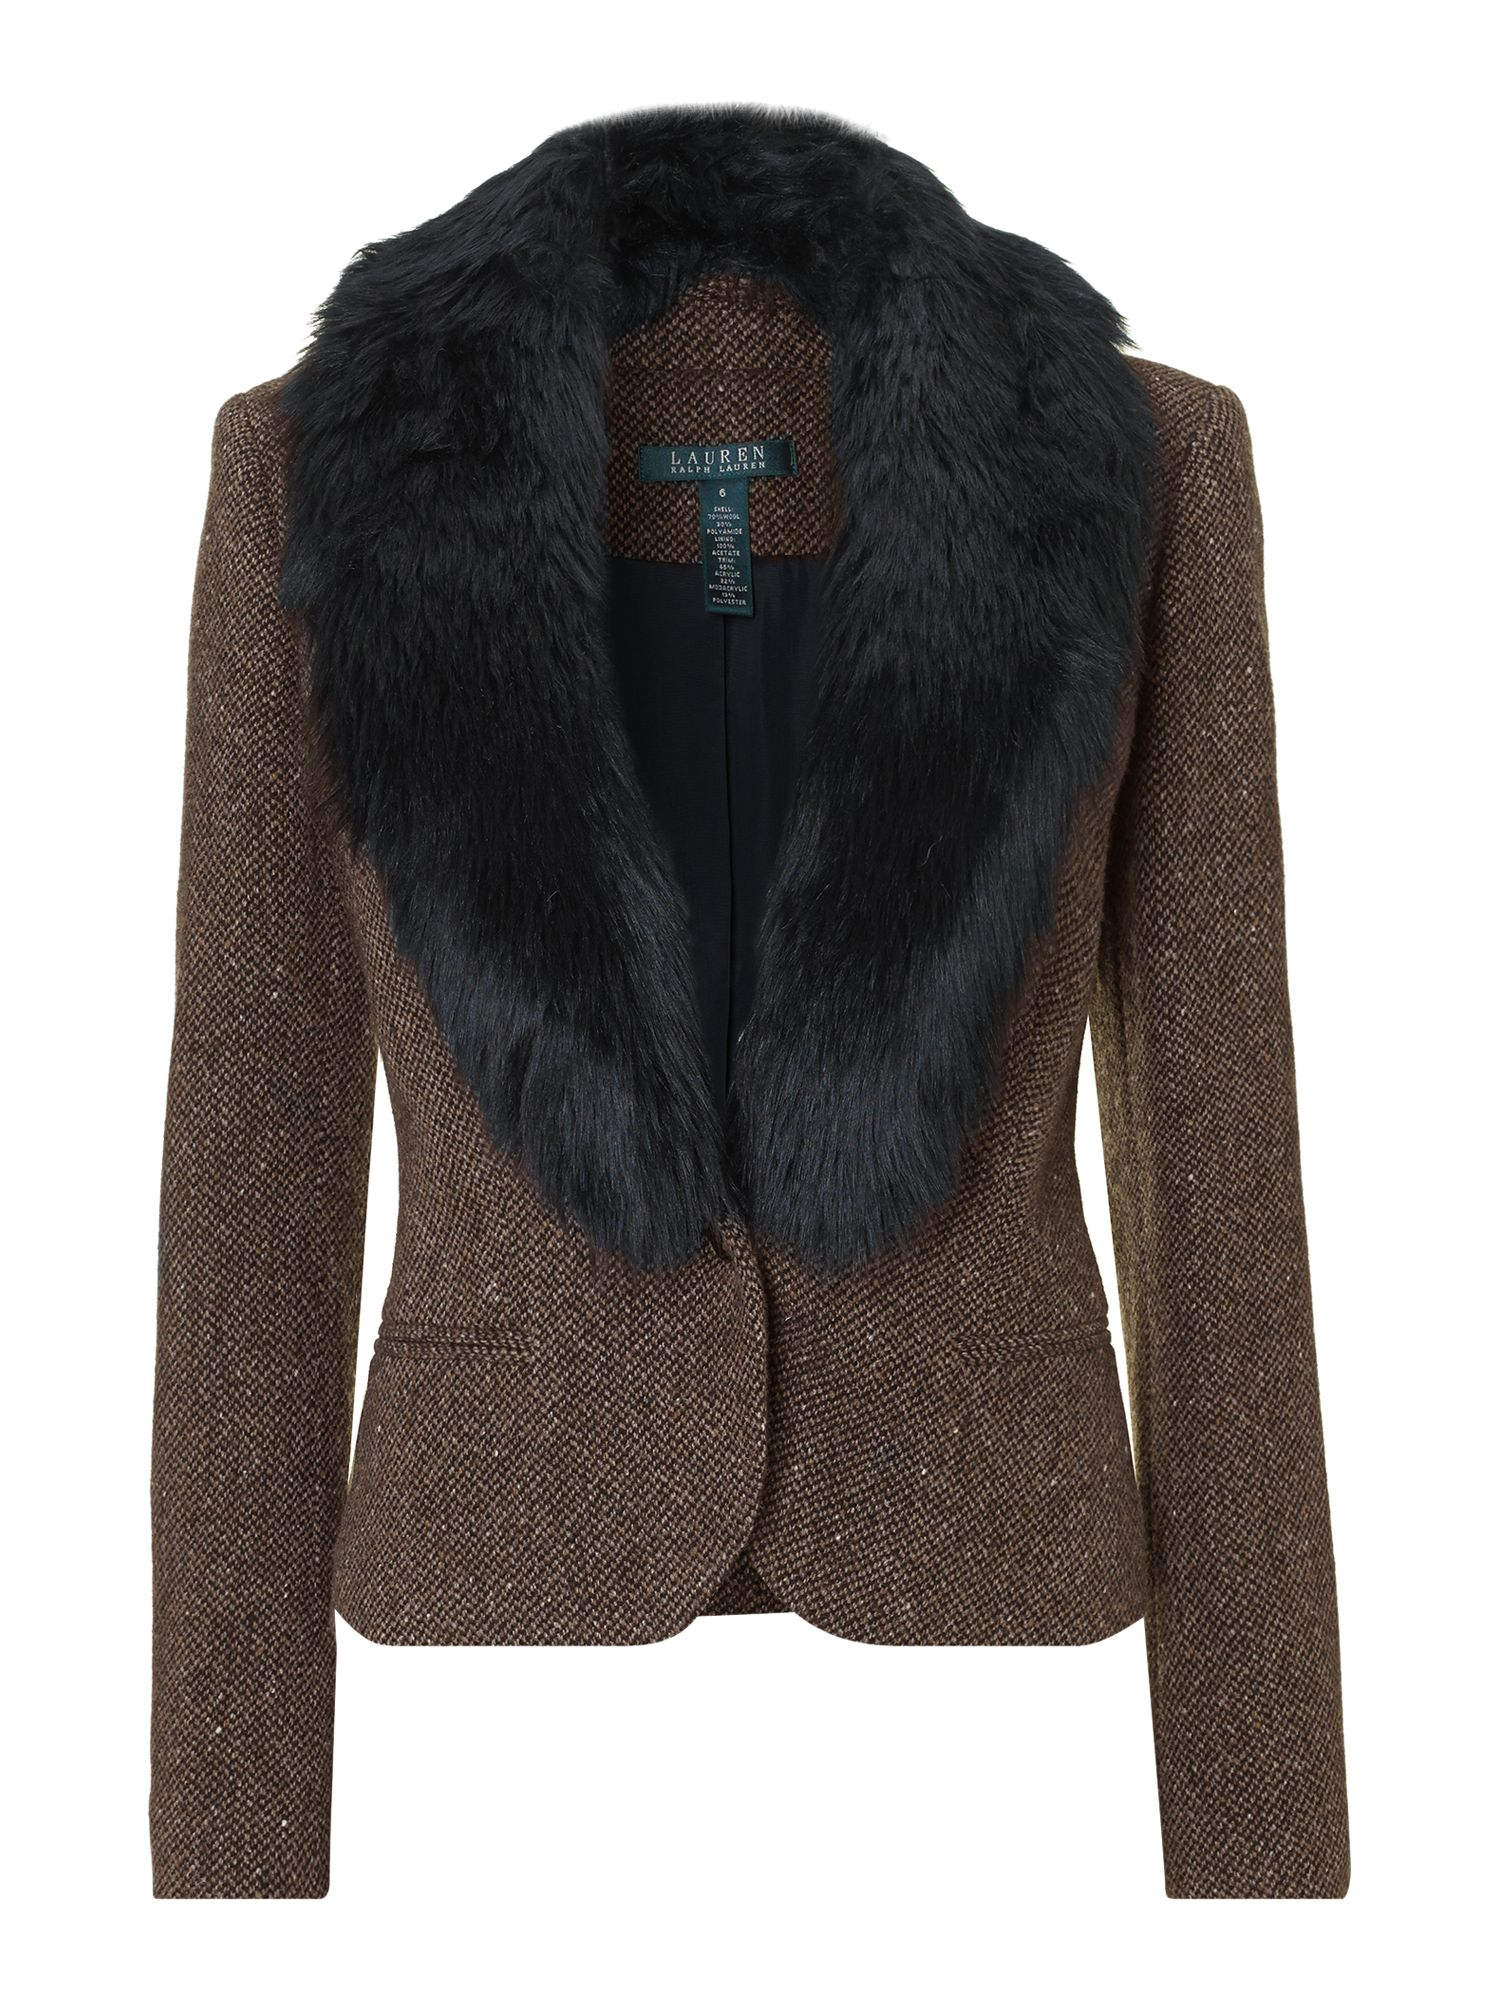 Lomg sleeve jacket with fur collar